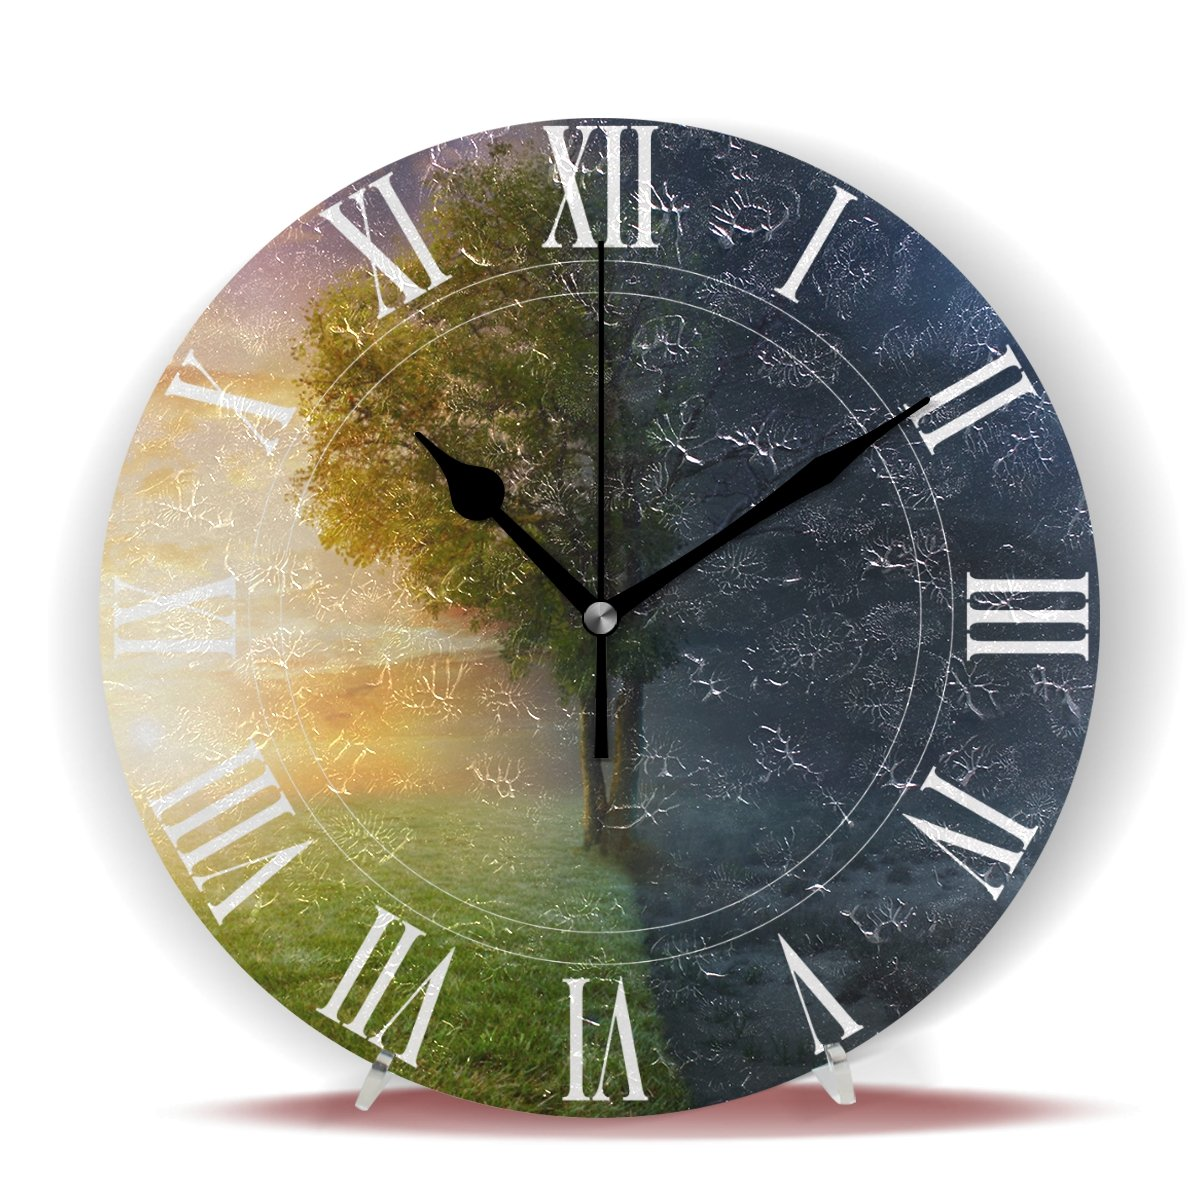 WellLee Night Day Landscape Life Tree Clock Acrylic Painted Silent Non-Ticking Round Wall Clock Home Art Bedroom Living Dorm Room Decoration by WellLee (Image #2)